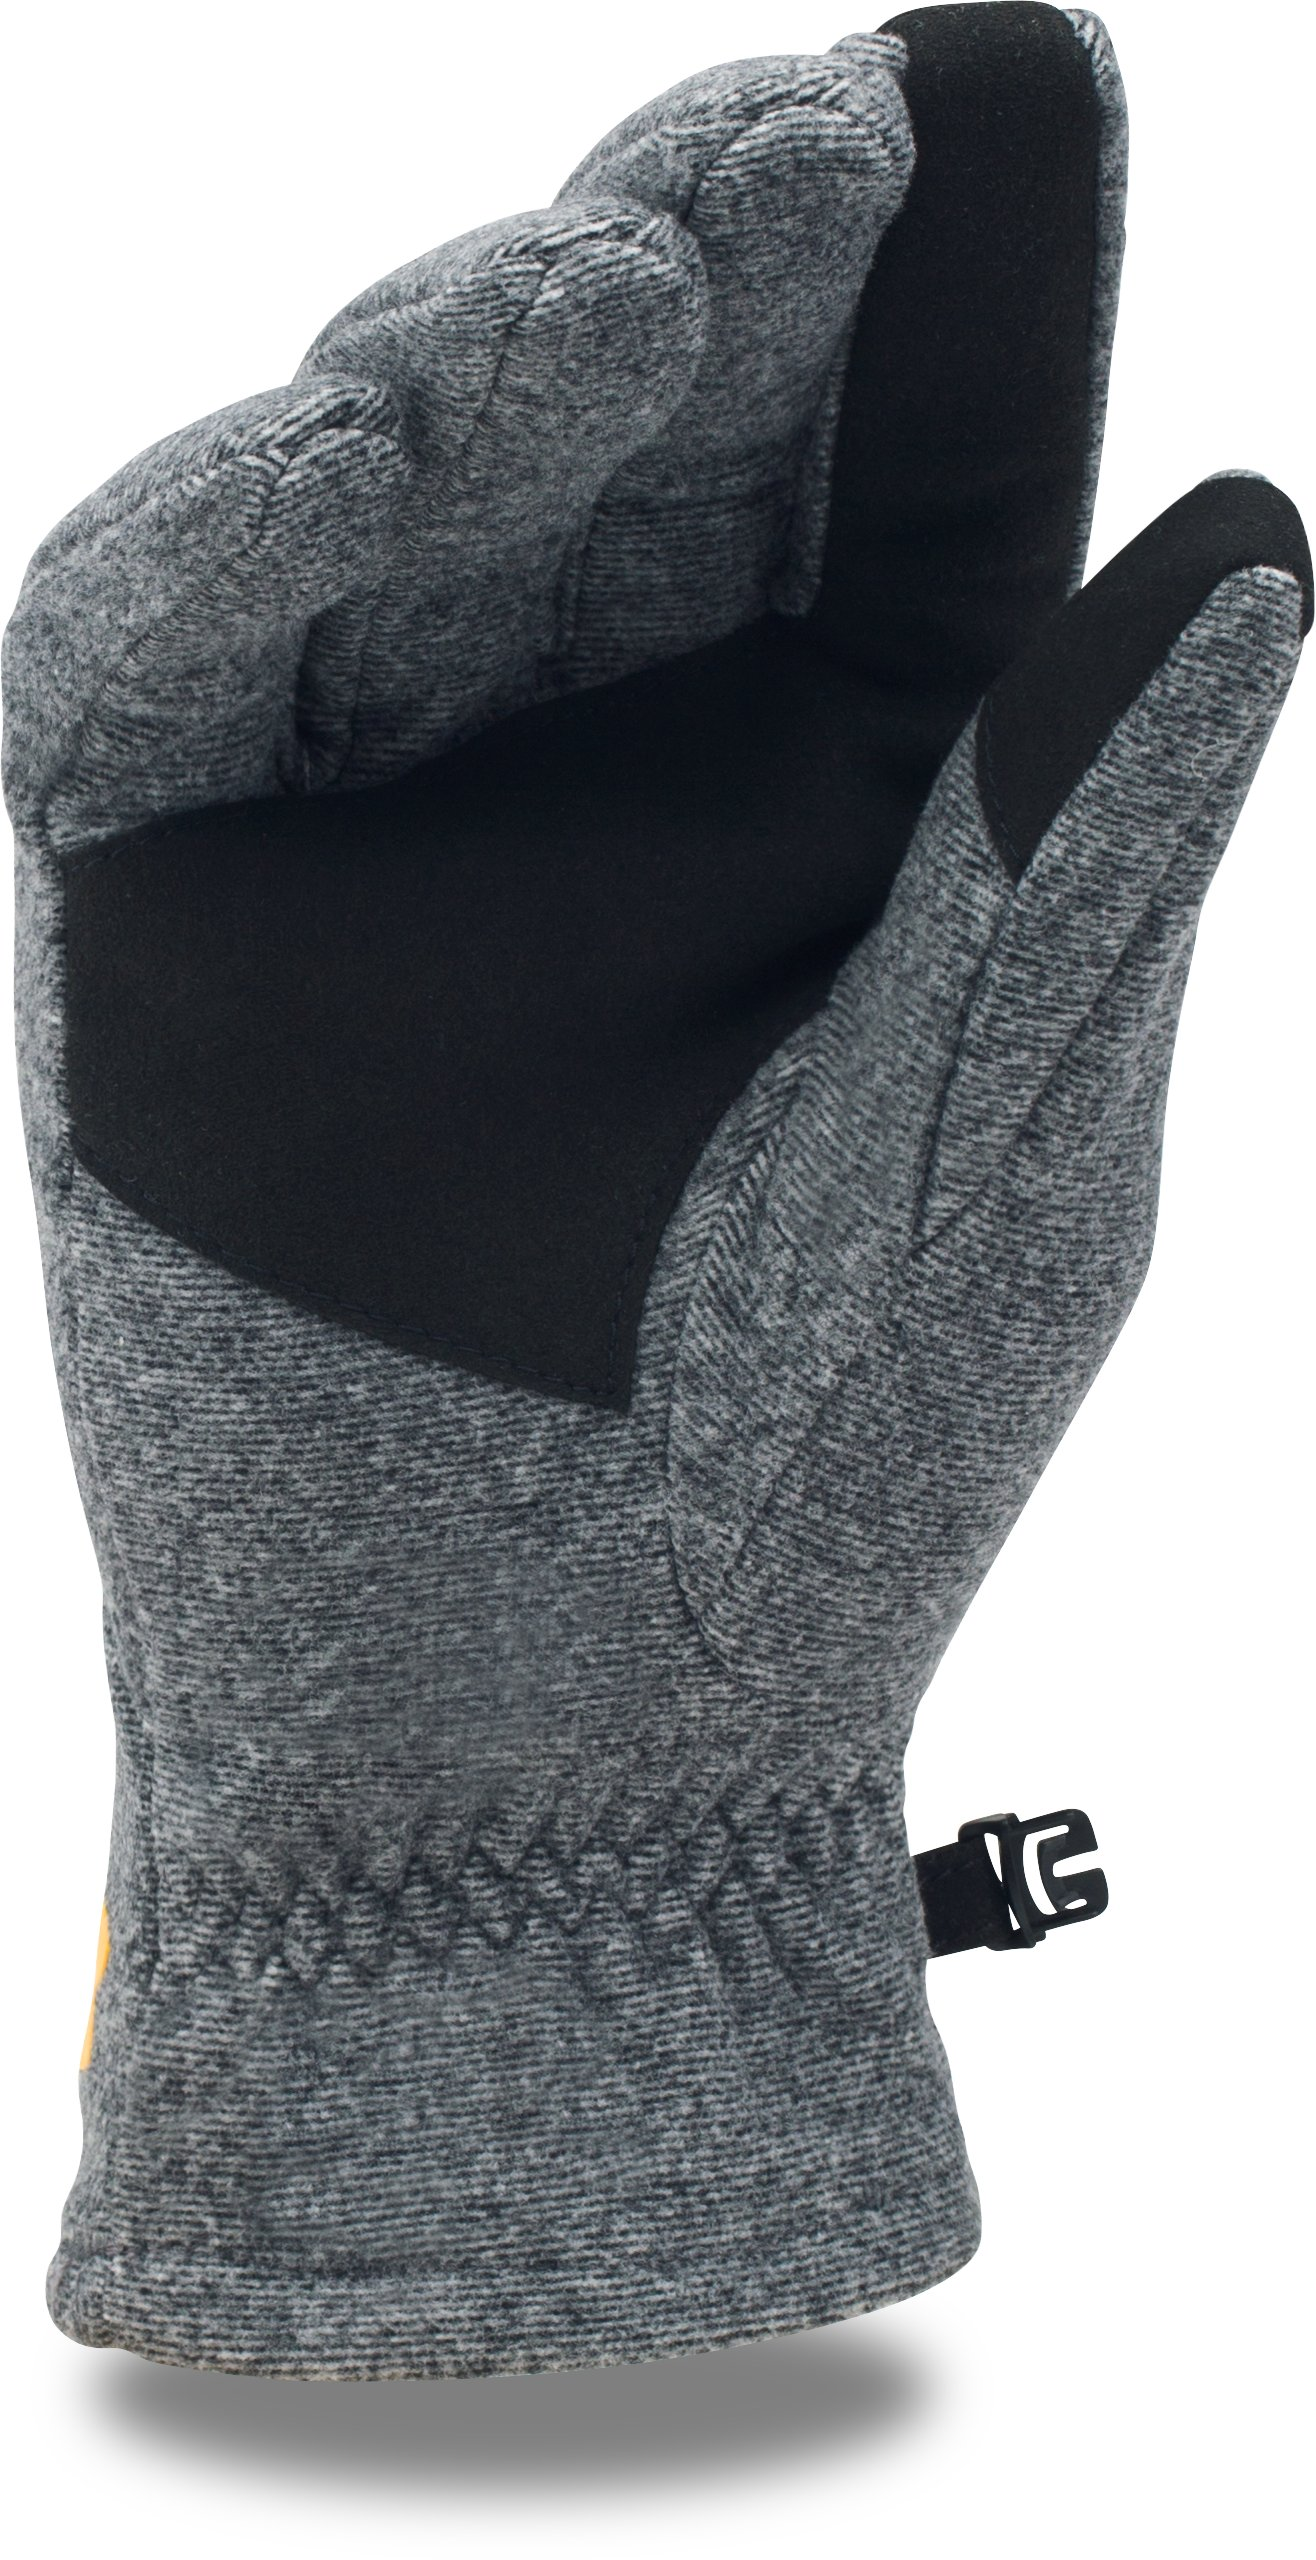 Kids' NFL Combine Authentic UA ColdGear® Infrared Fleece Gloves, Pittsburgh Steelers